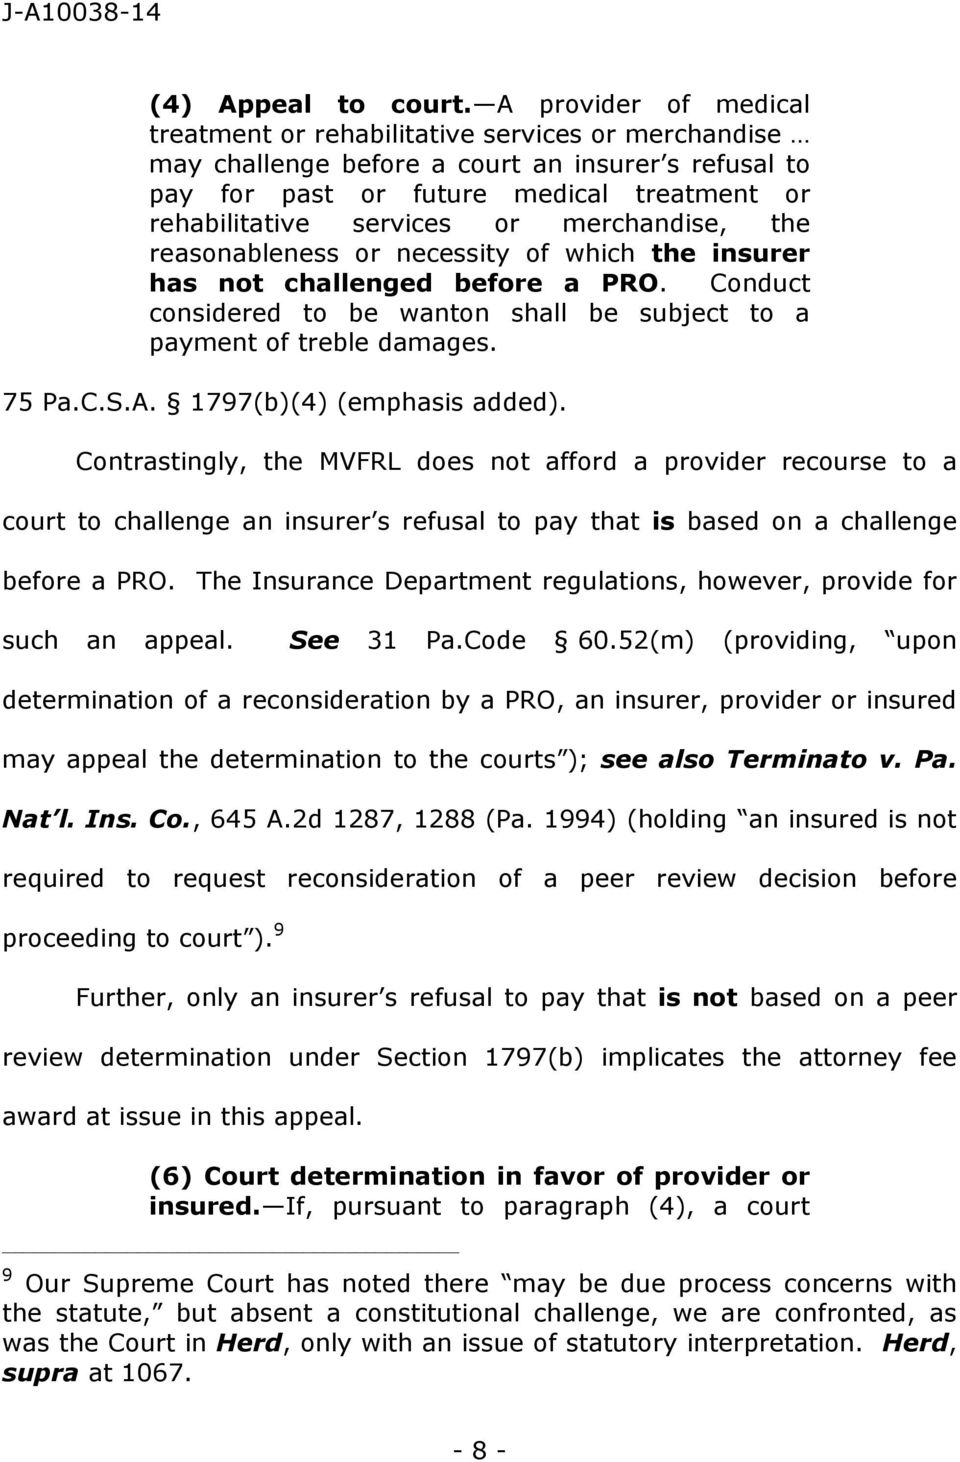 merchandise, the reasonableness or necessity of which the insurer has not challenged before a PRO. Conduct considered to be wanton shall be subject to a payment of treble damages. 75 Pa.C.S.A.